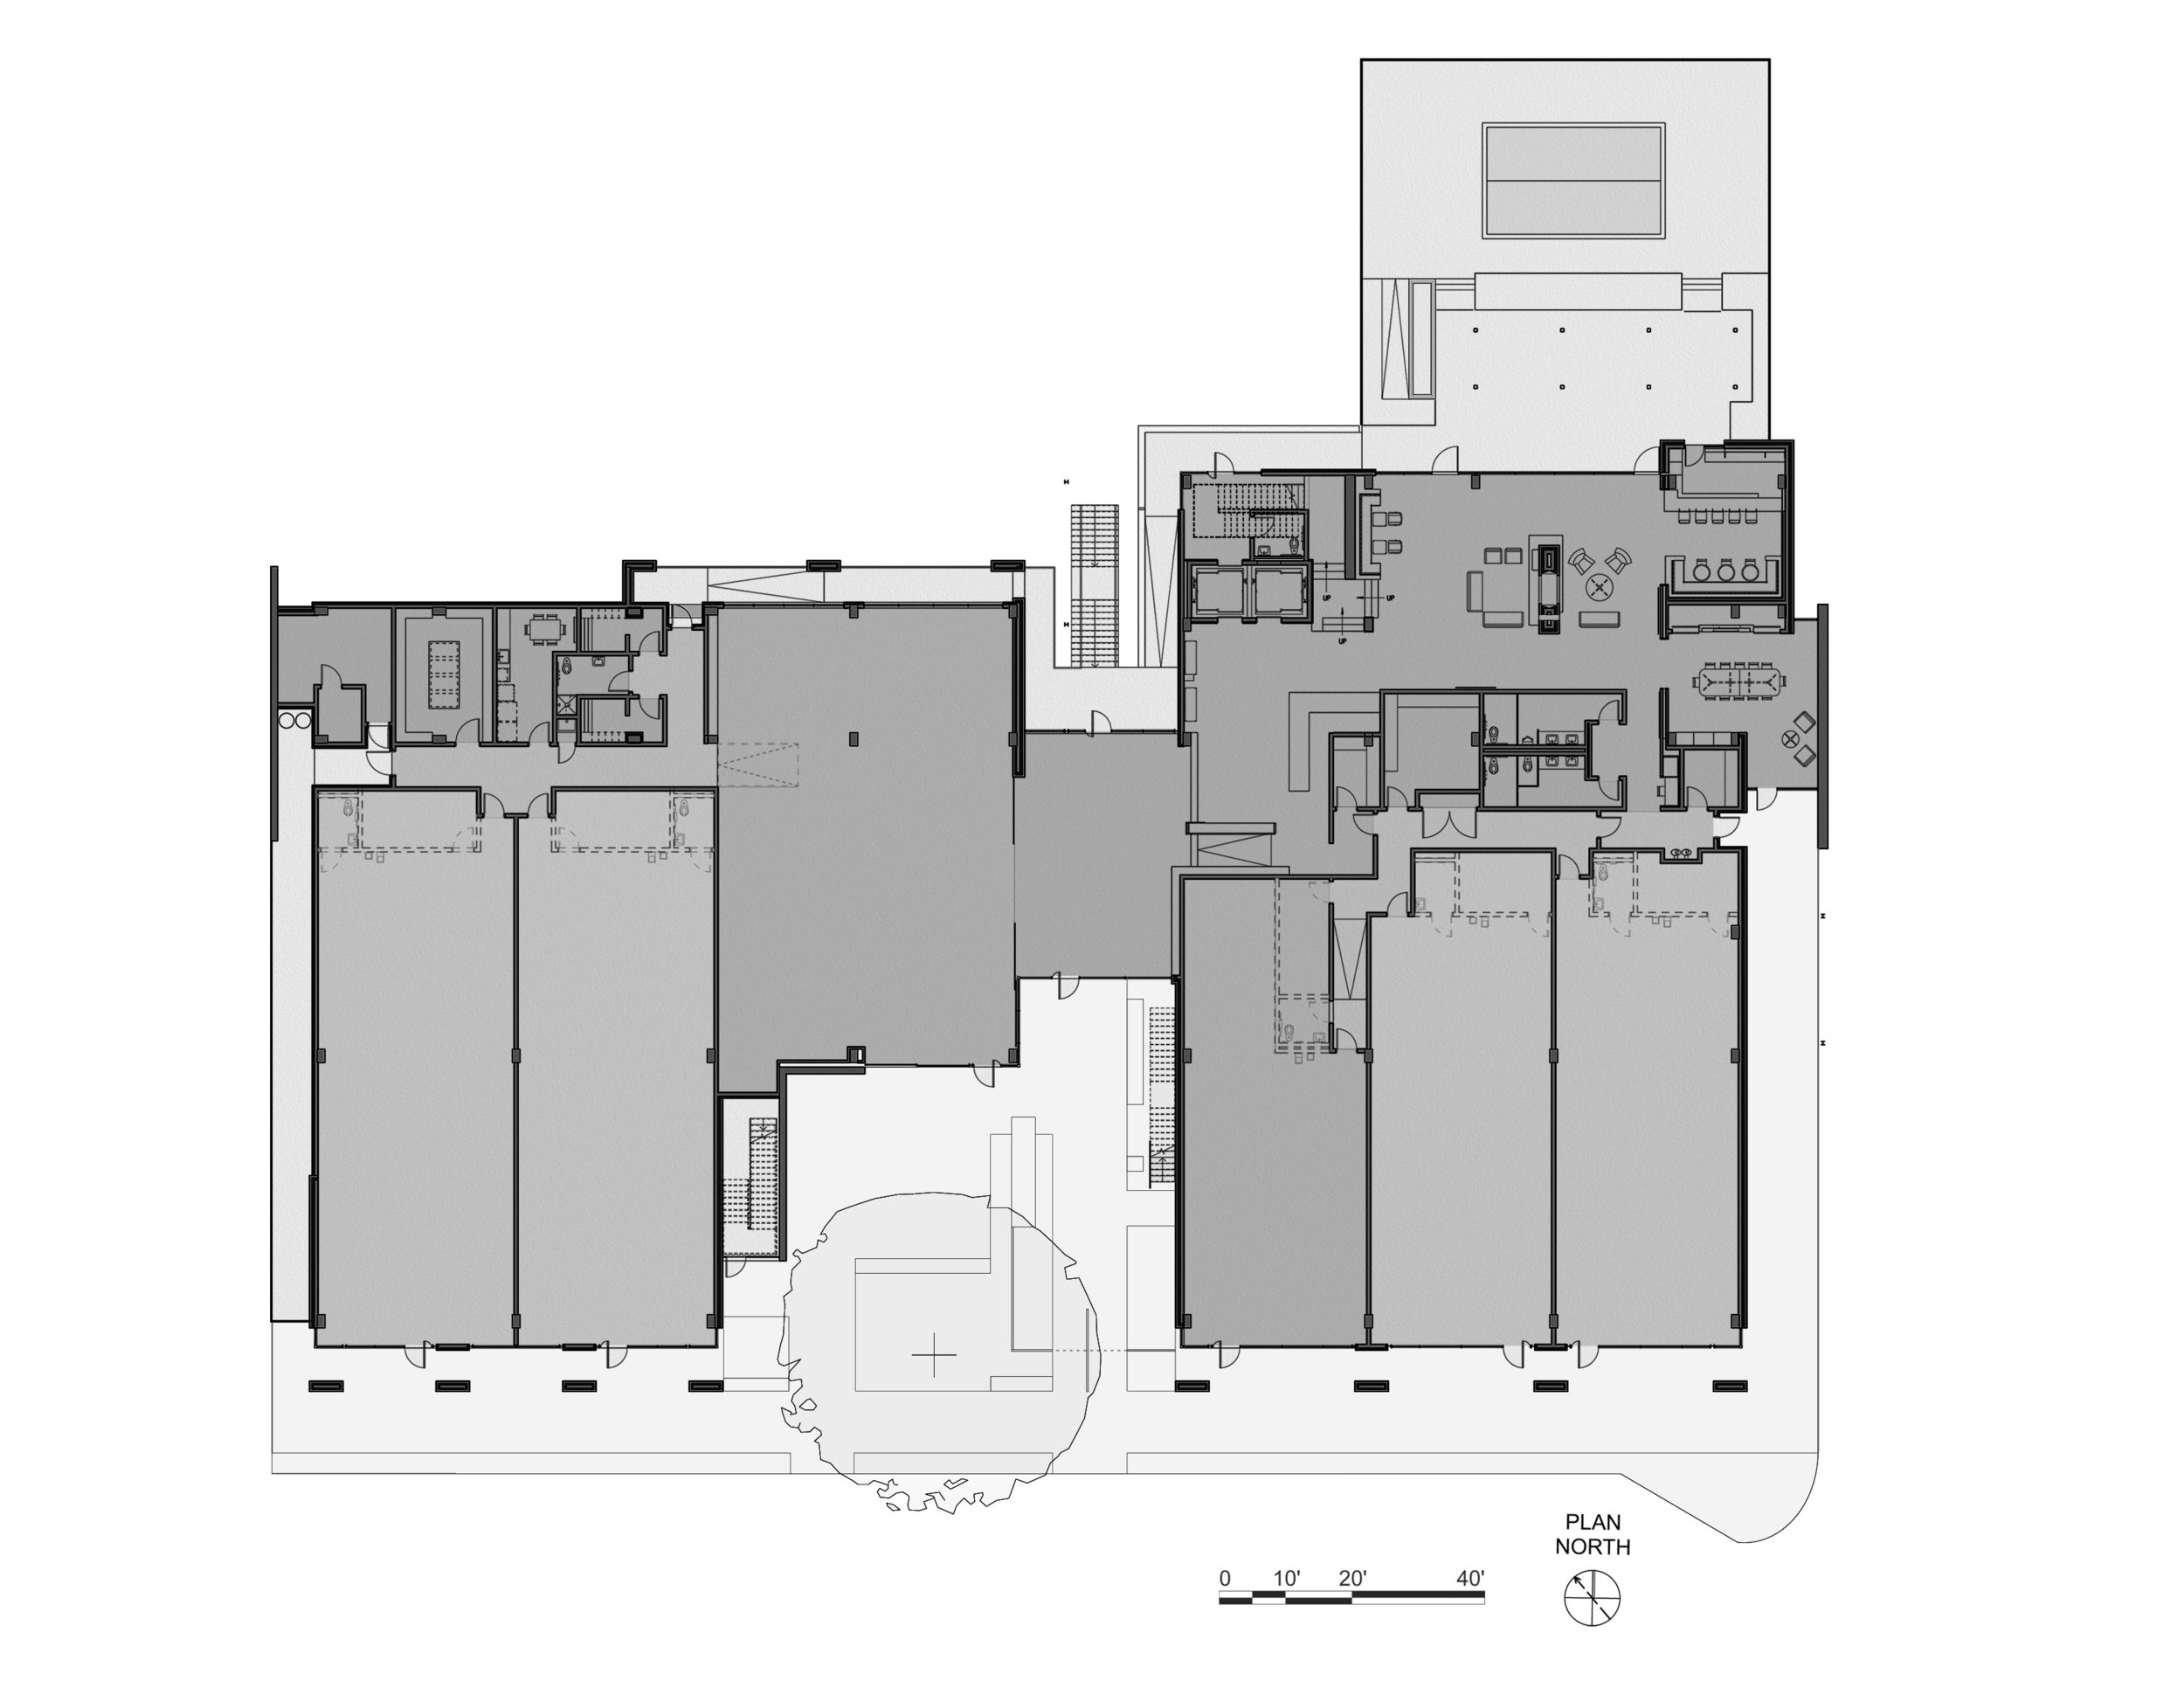 furman_keil_architects_austin_texas_main_street_hotel_plan.jpg